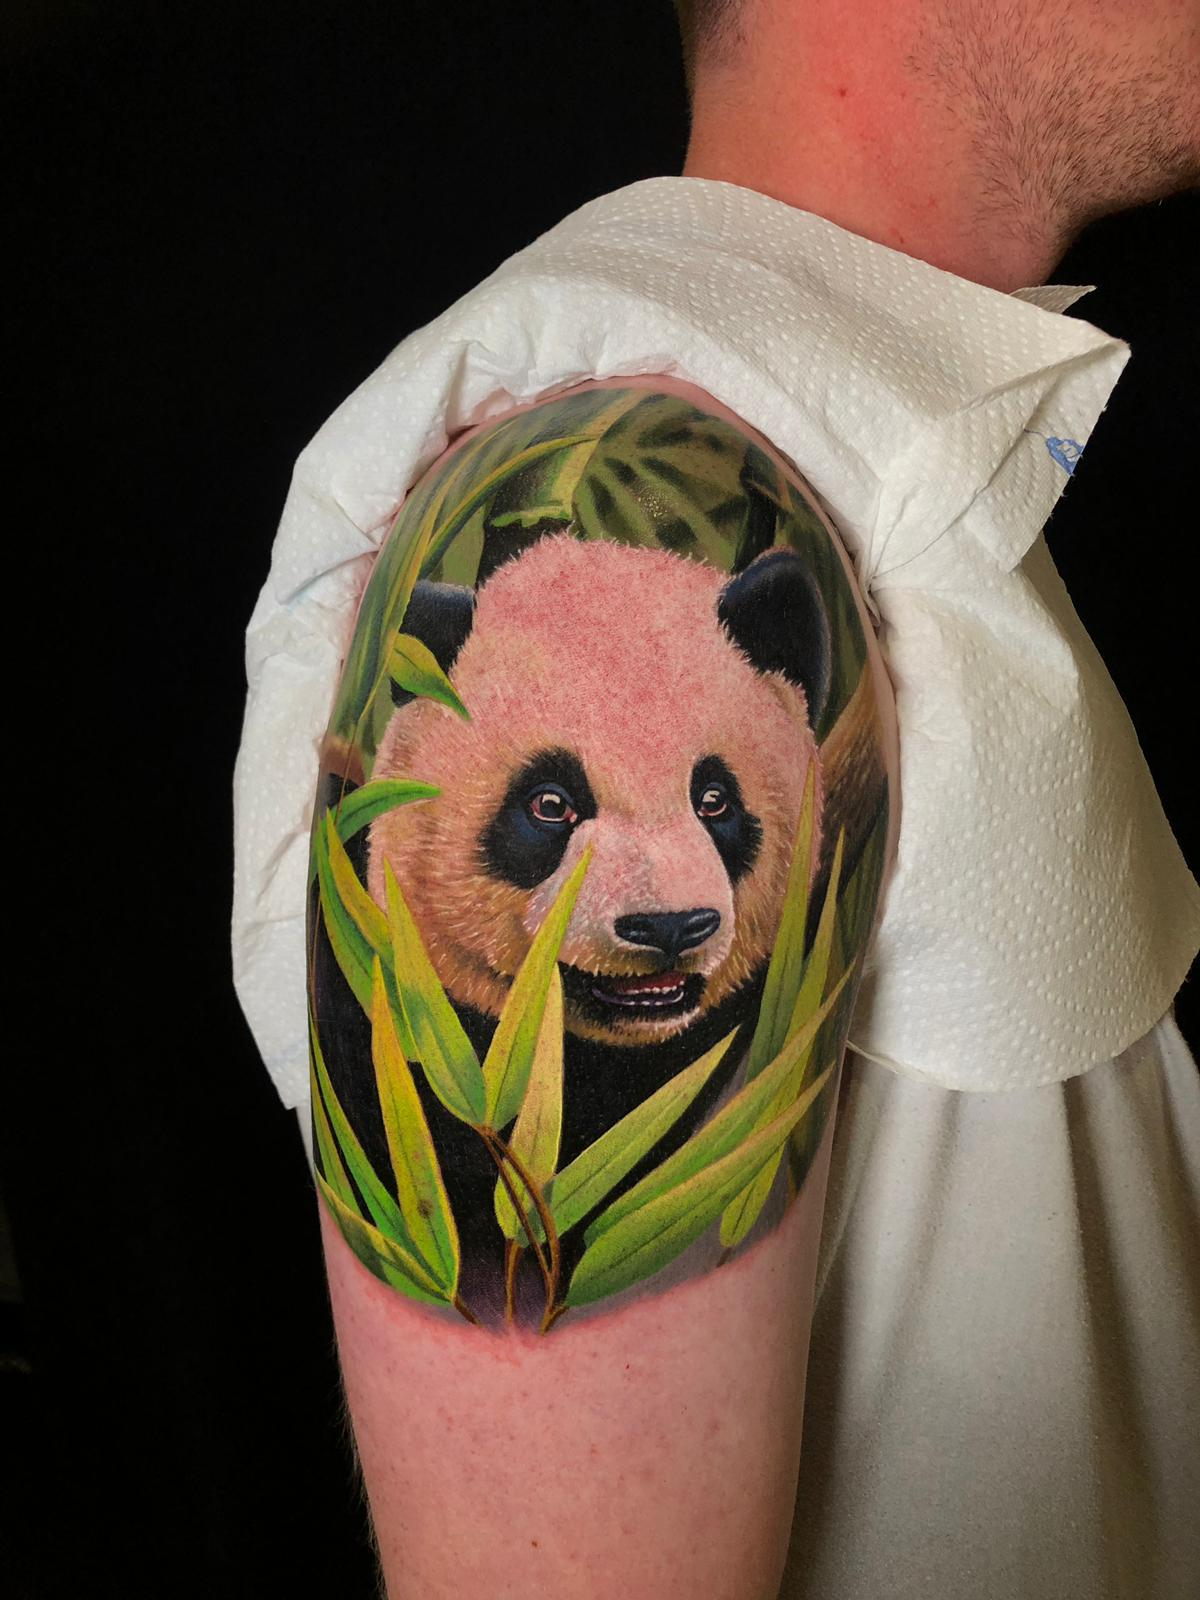 tattoo anansi münchen munich joe török tiere panda bär bear tier animal color realismus tätowierer artist art